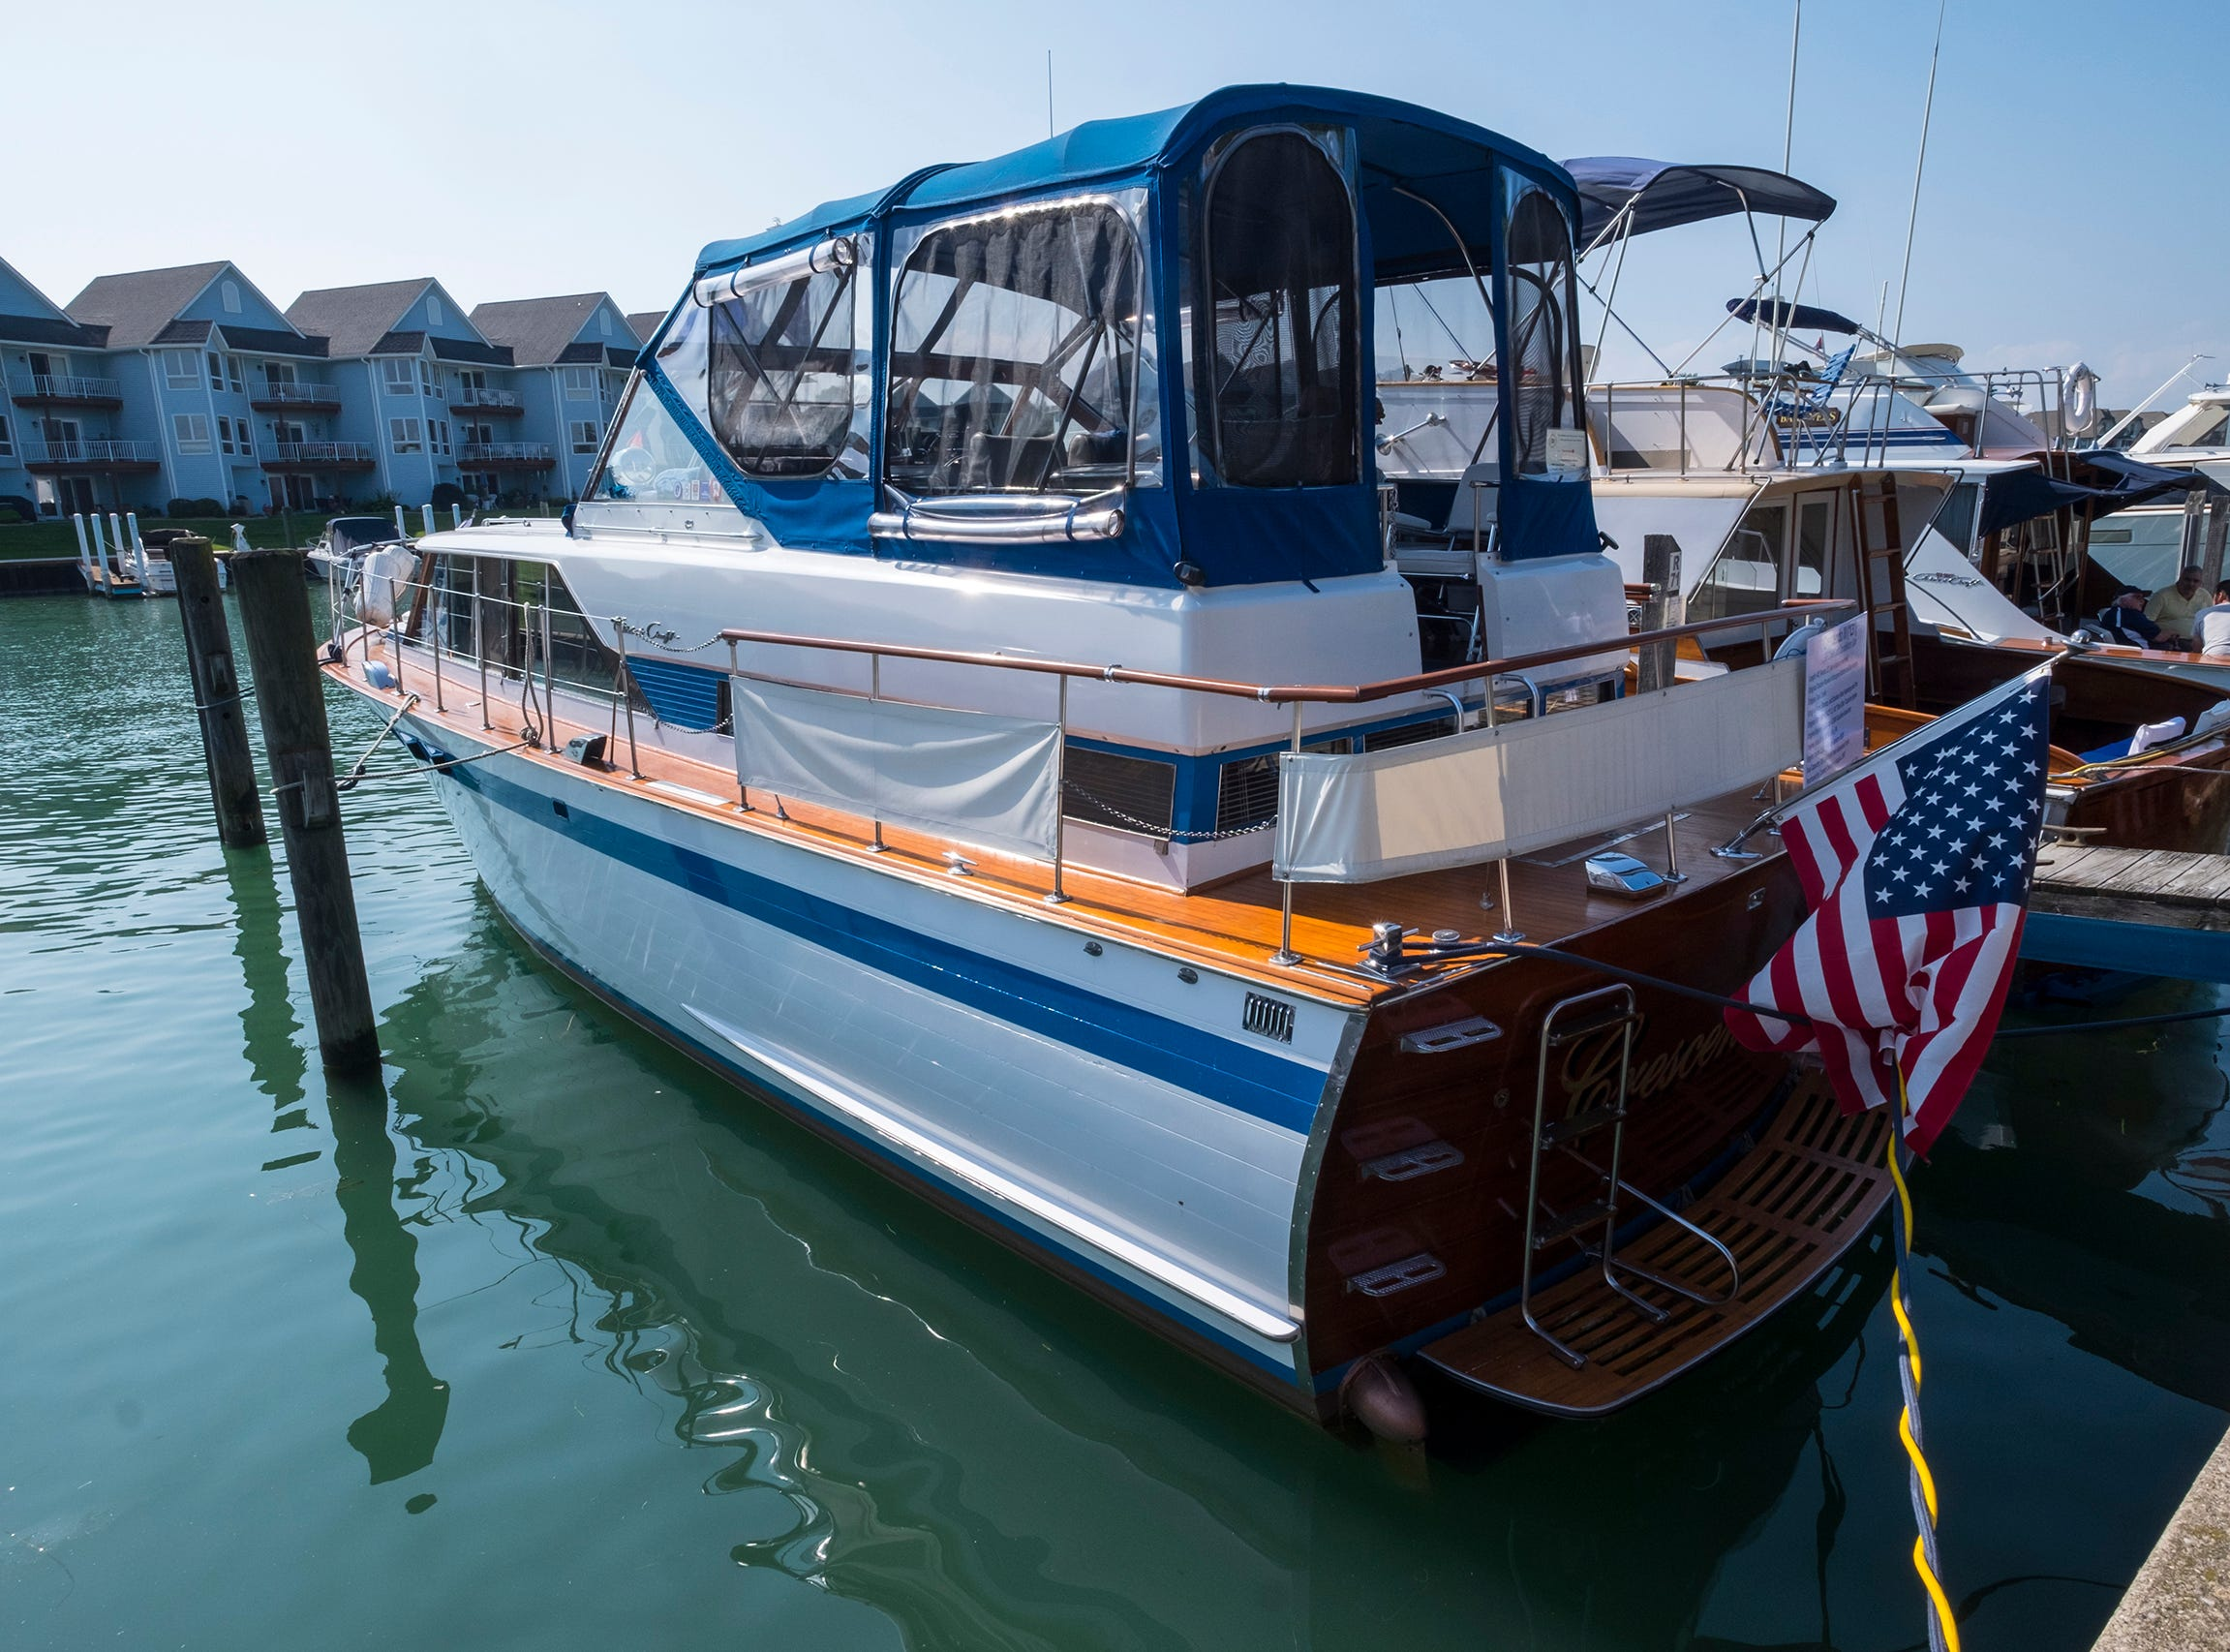 The Crescendo III, a 40-foot 1966 Chris Craft Constellation Salon, sits docked Friday, Sept. 14, 2018, during the 2018 ACBS International Boat Show. THe ship has the original double-planked mahogany bottom and oak framing, original teak decks, brass, bronze and stainless steel fastenings and trim and is powered by the original 427 cubic inch Ford V8 engine.